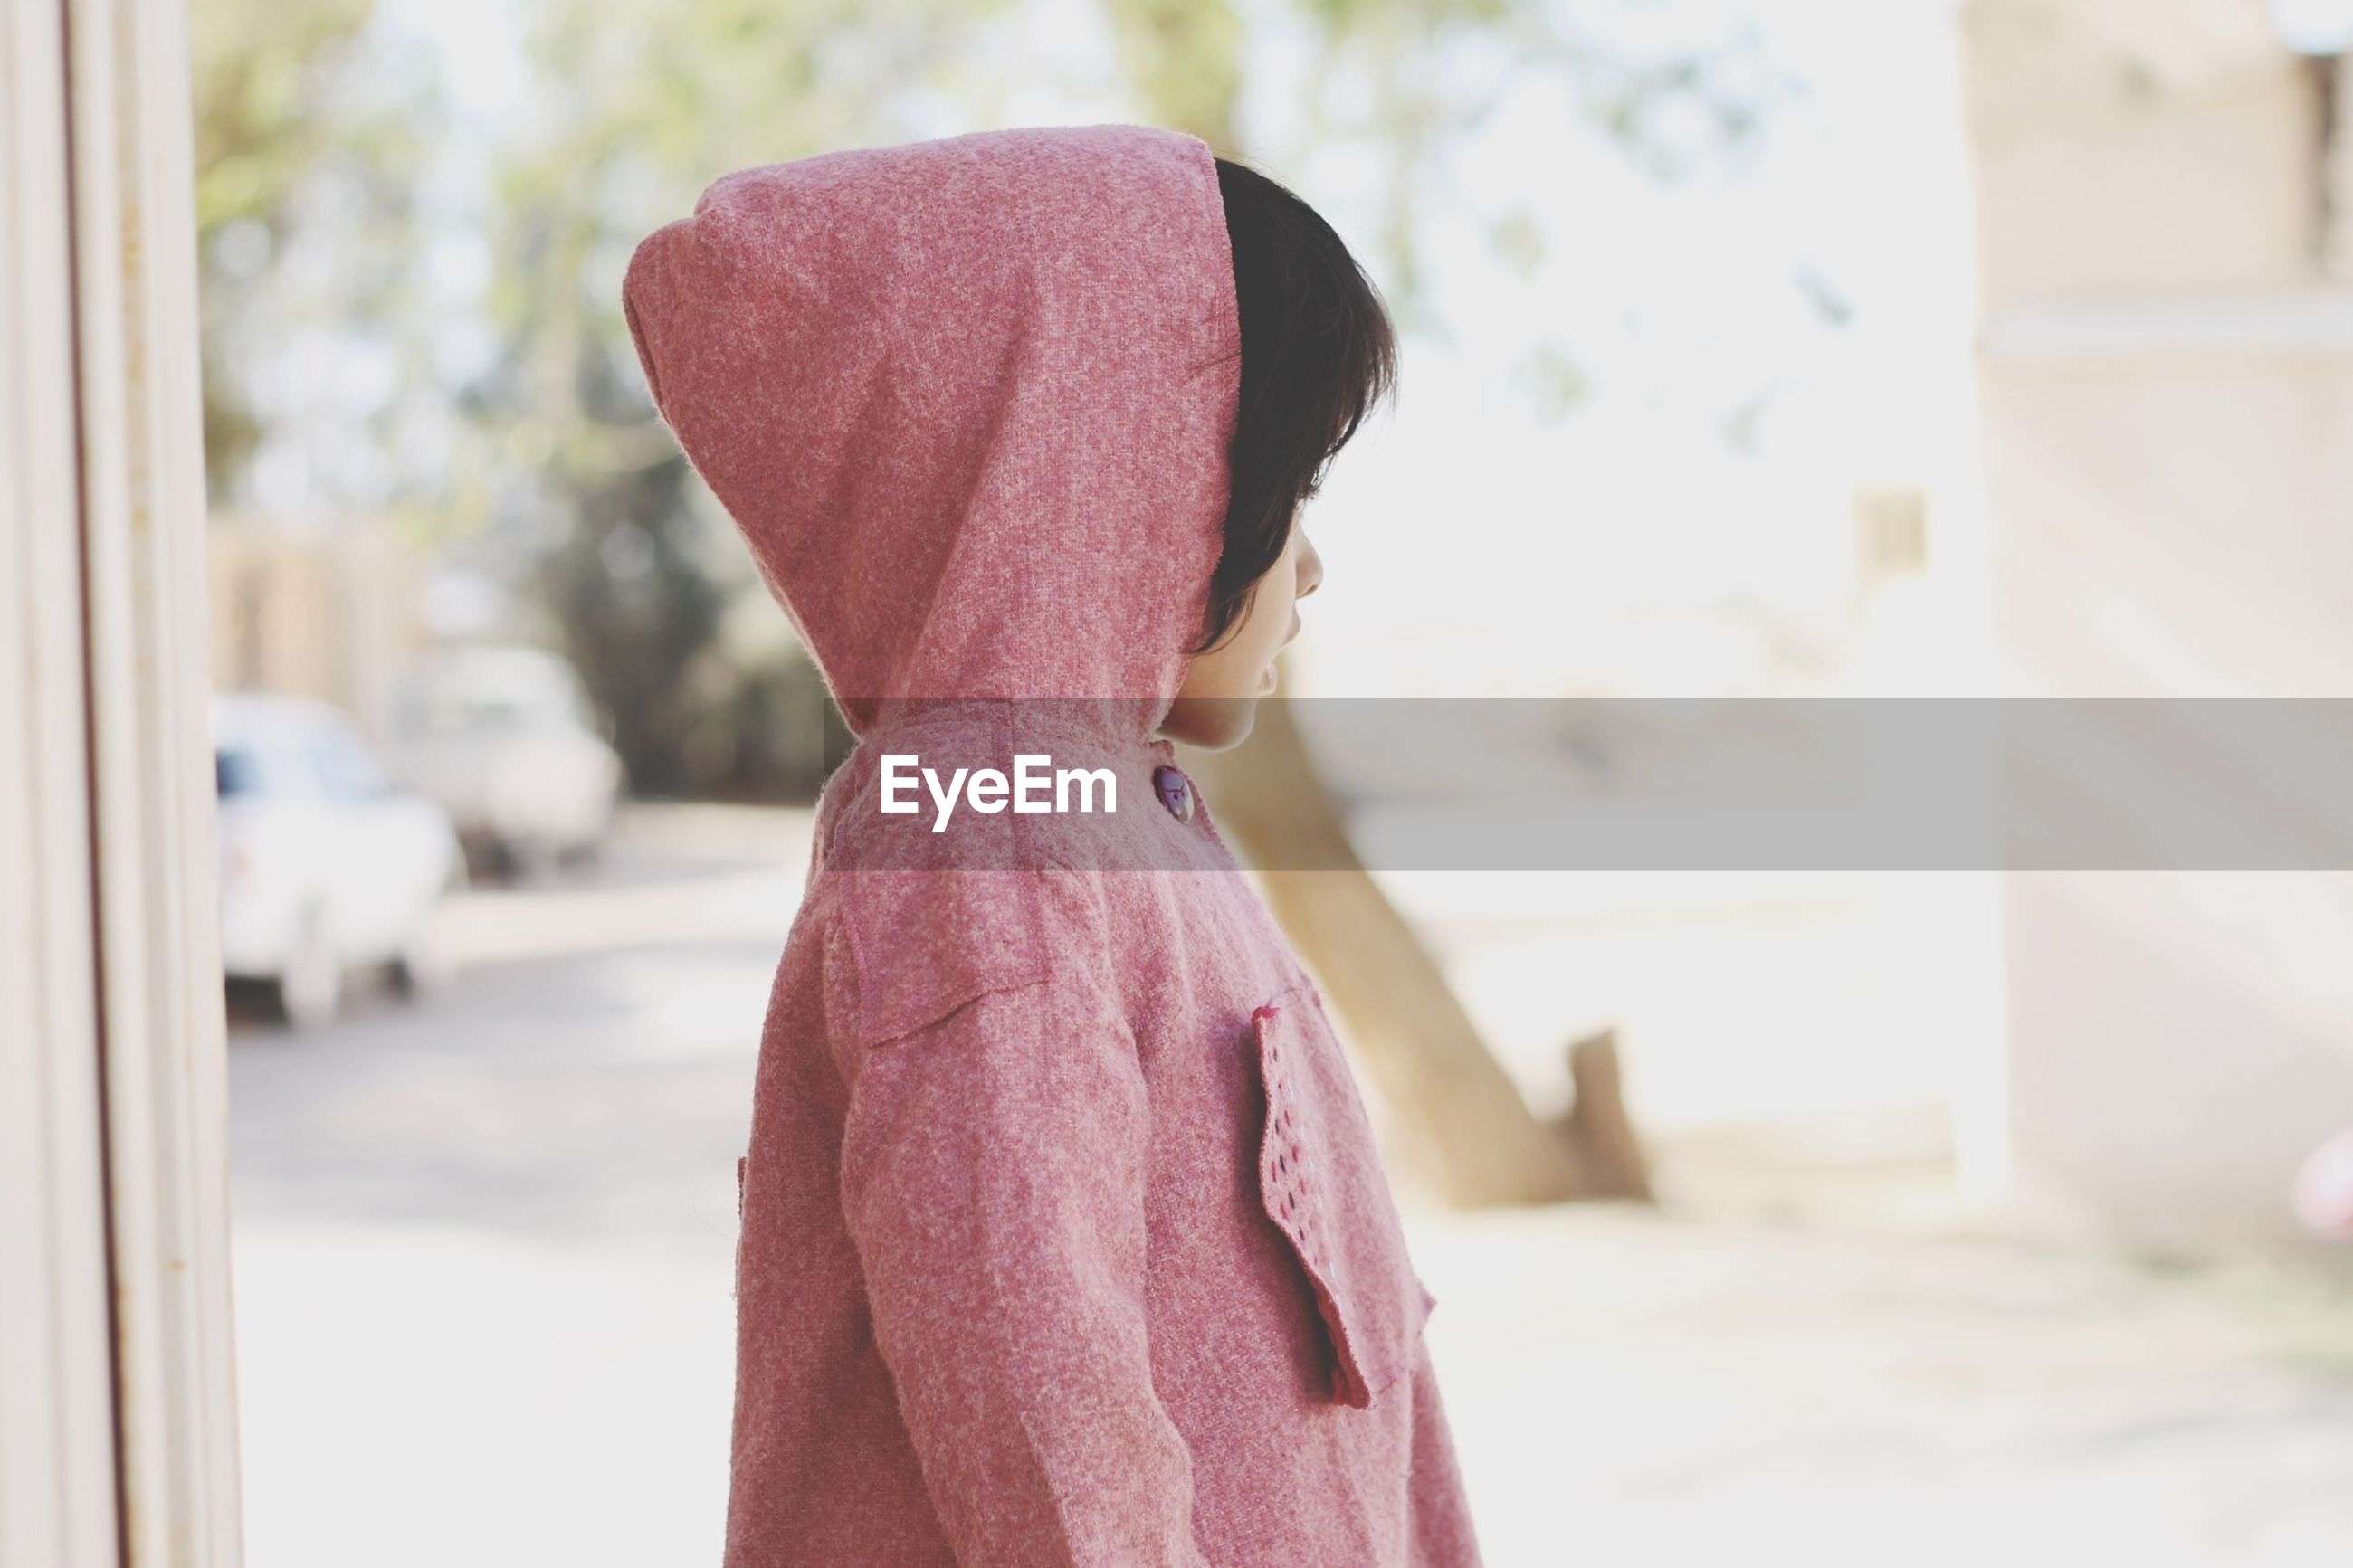 focus on foreground, close-up, selective focus, indoors, day, textile, fabric, hanging, incidental people, person, red, fashion, art and craft, sunlight, pink color, rear view, clothing